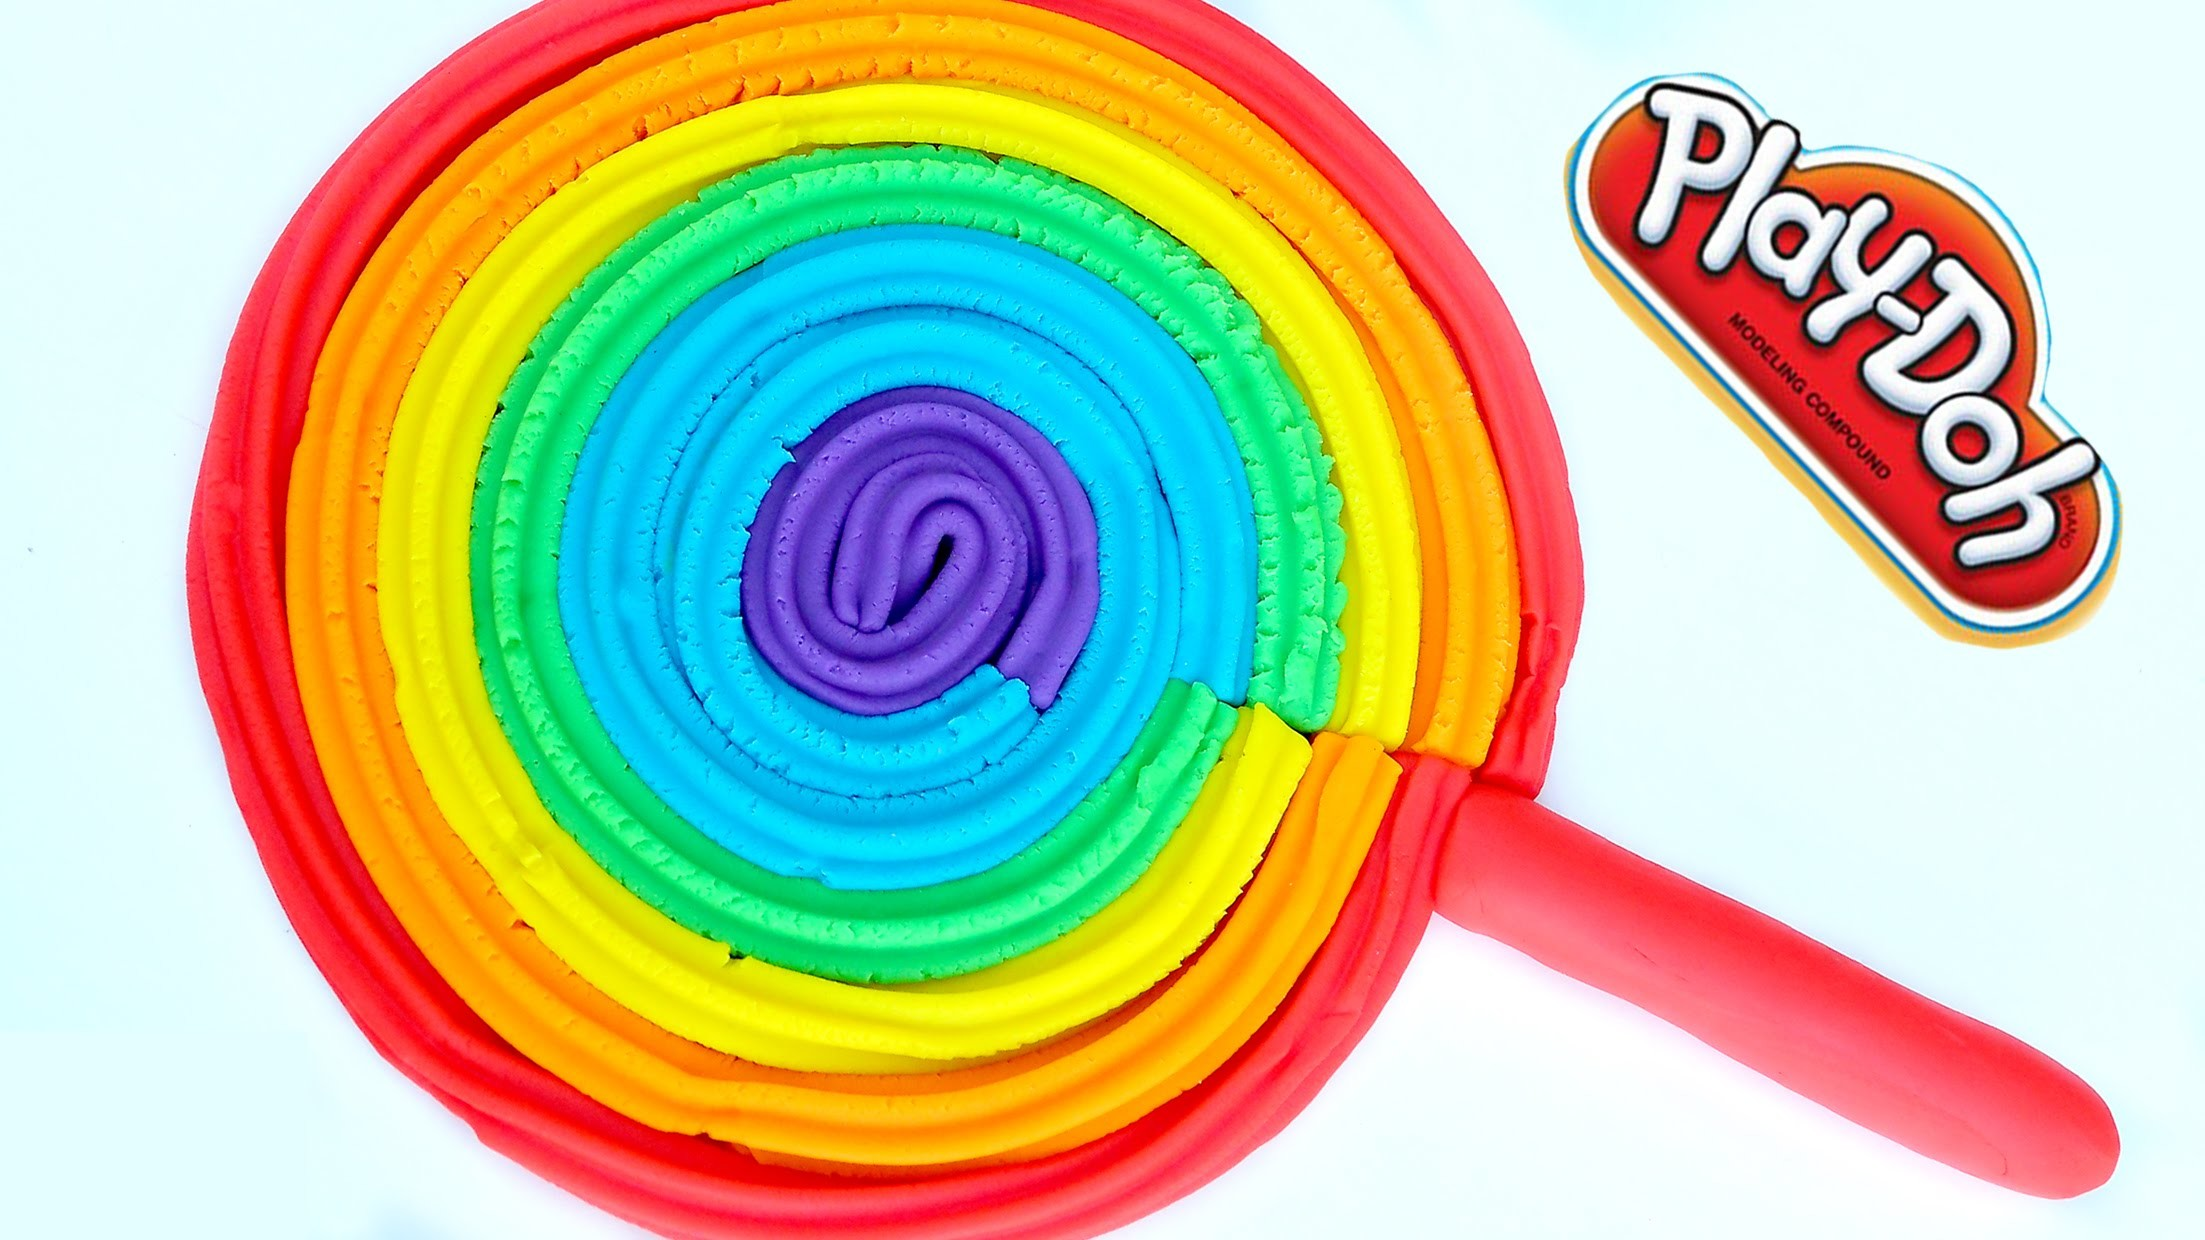 How To Make Play Doh Super Mega lollipop Modelling Clay Rainbow Learning Colors Kids Play